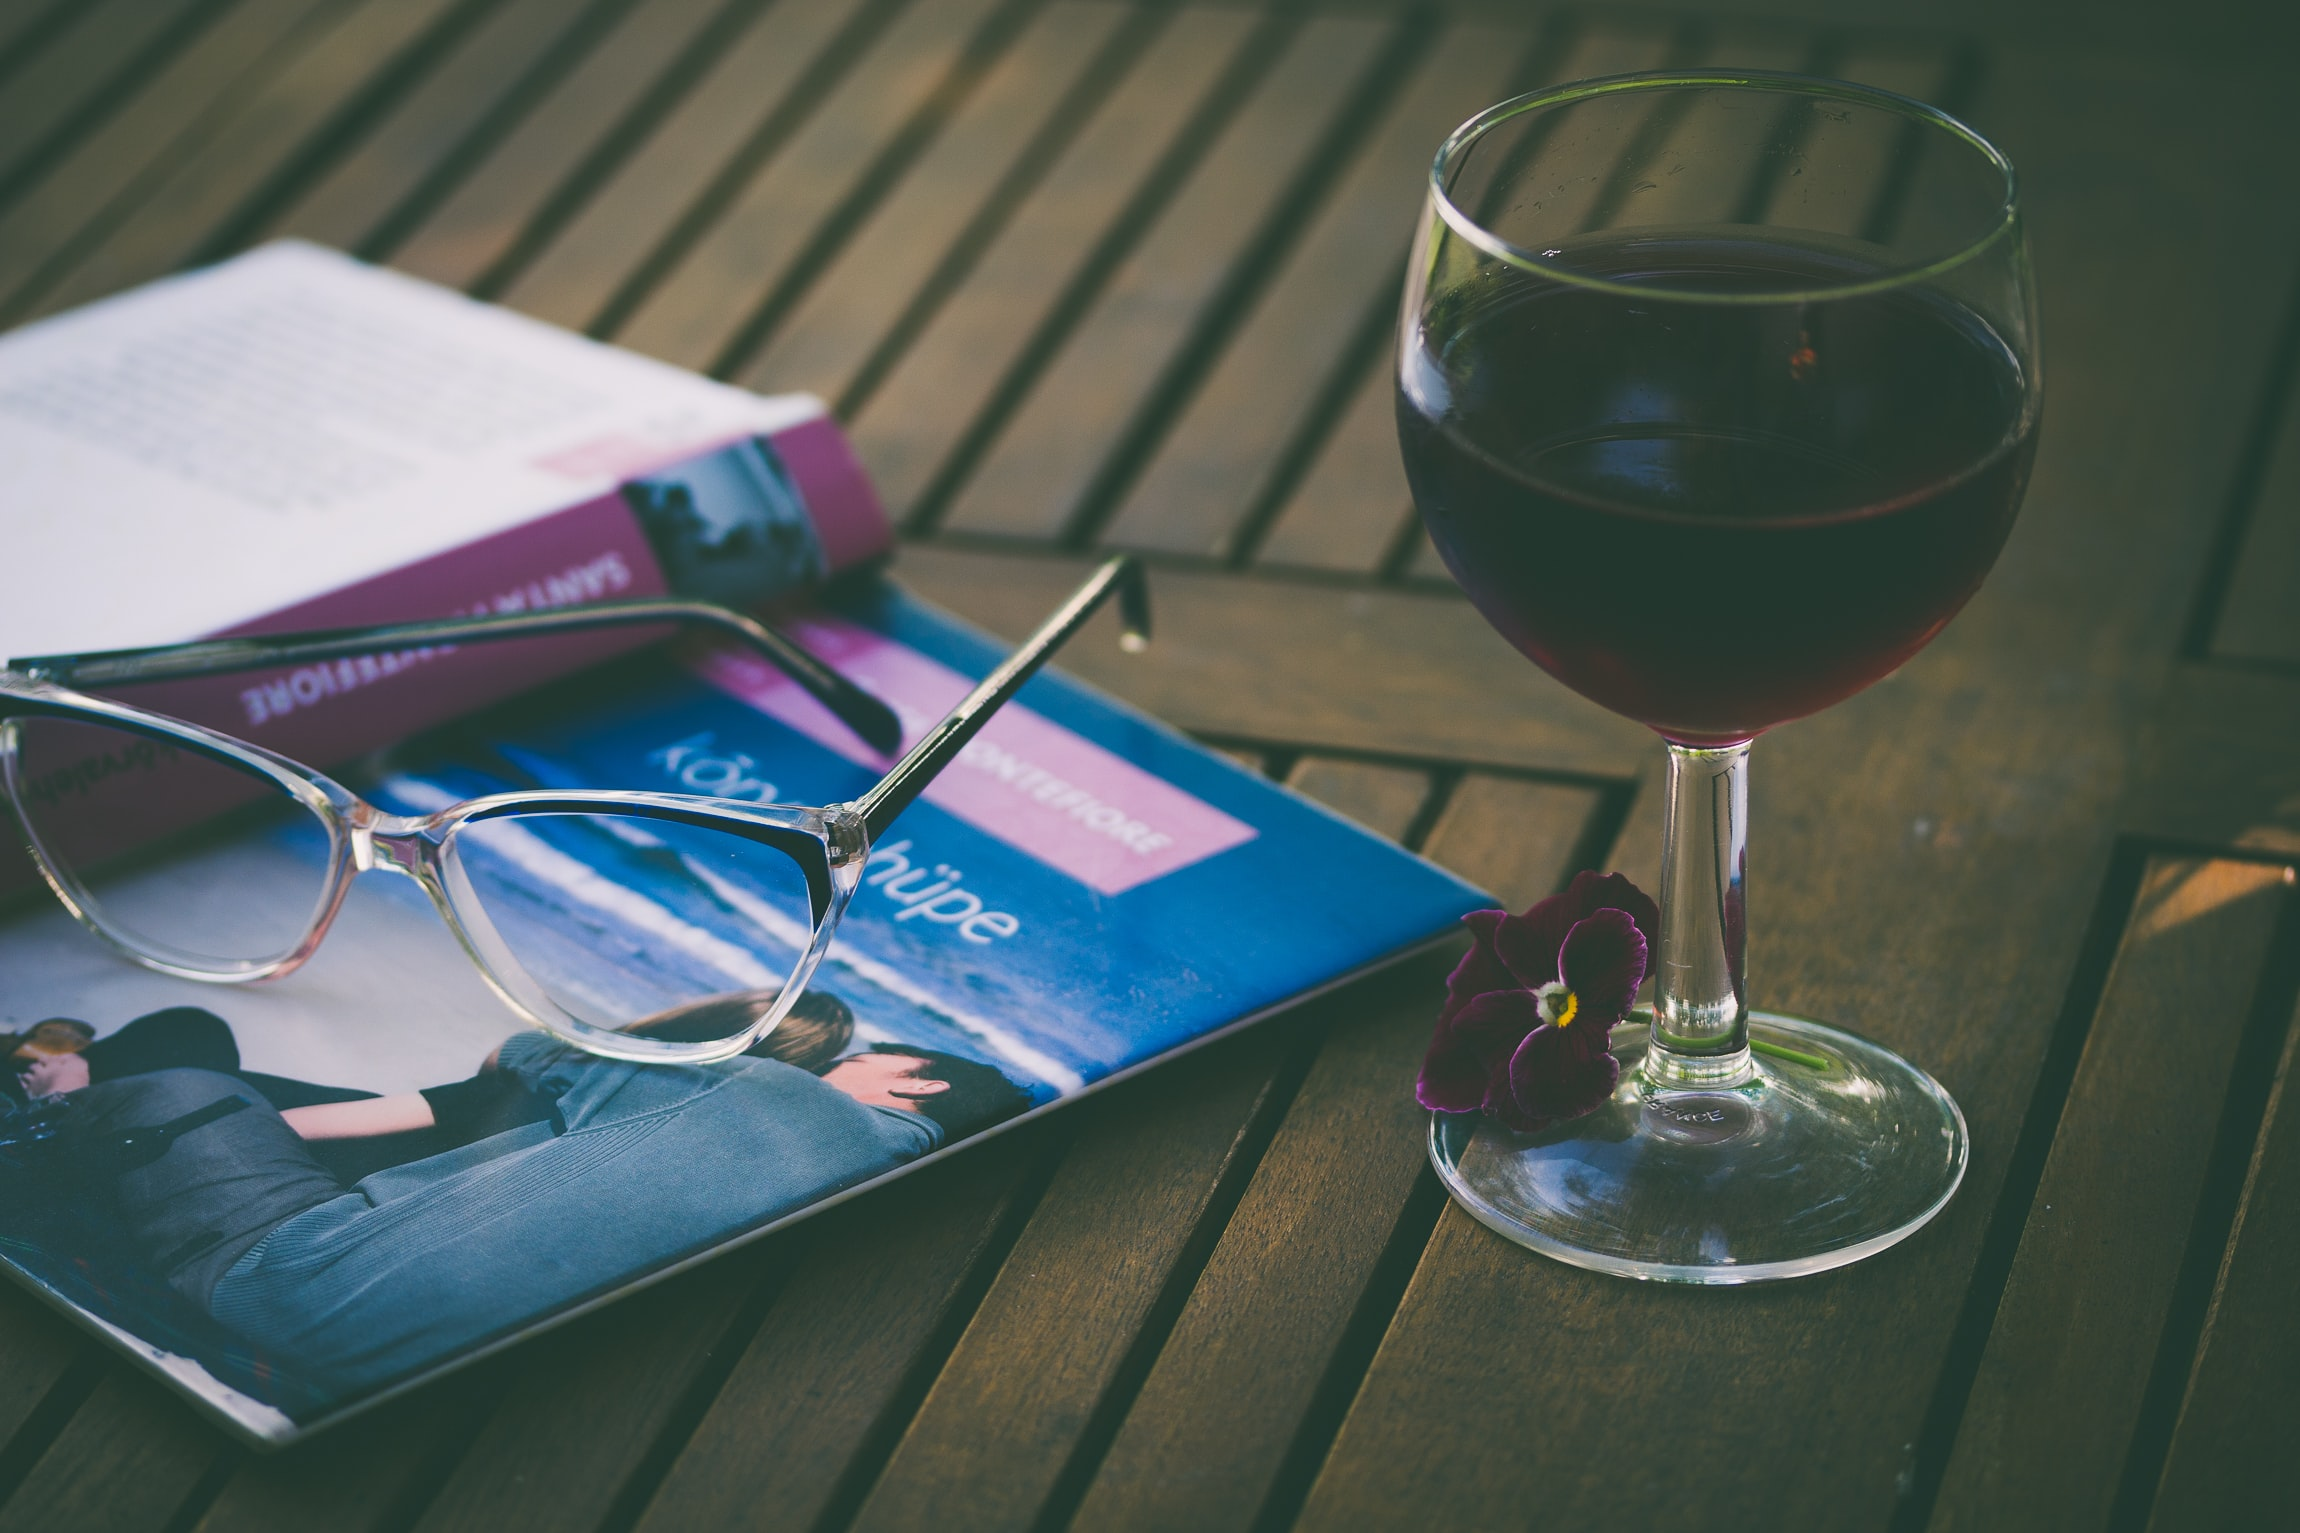 A pair of glasses atop an open book next to a glass of red wine